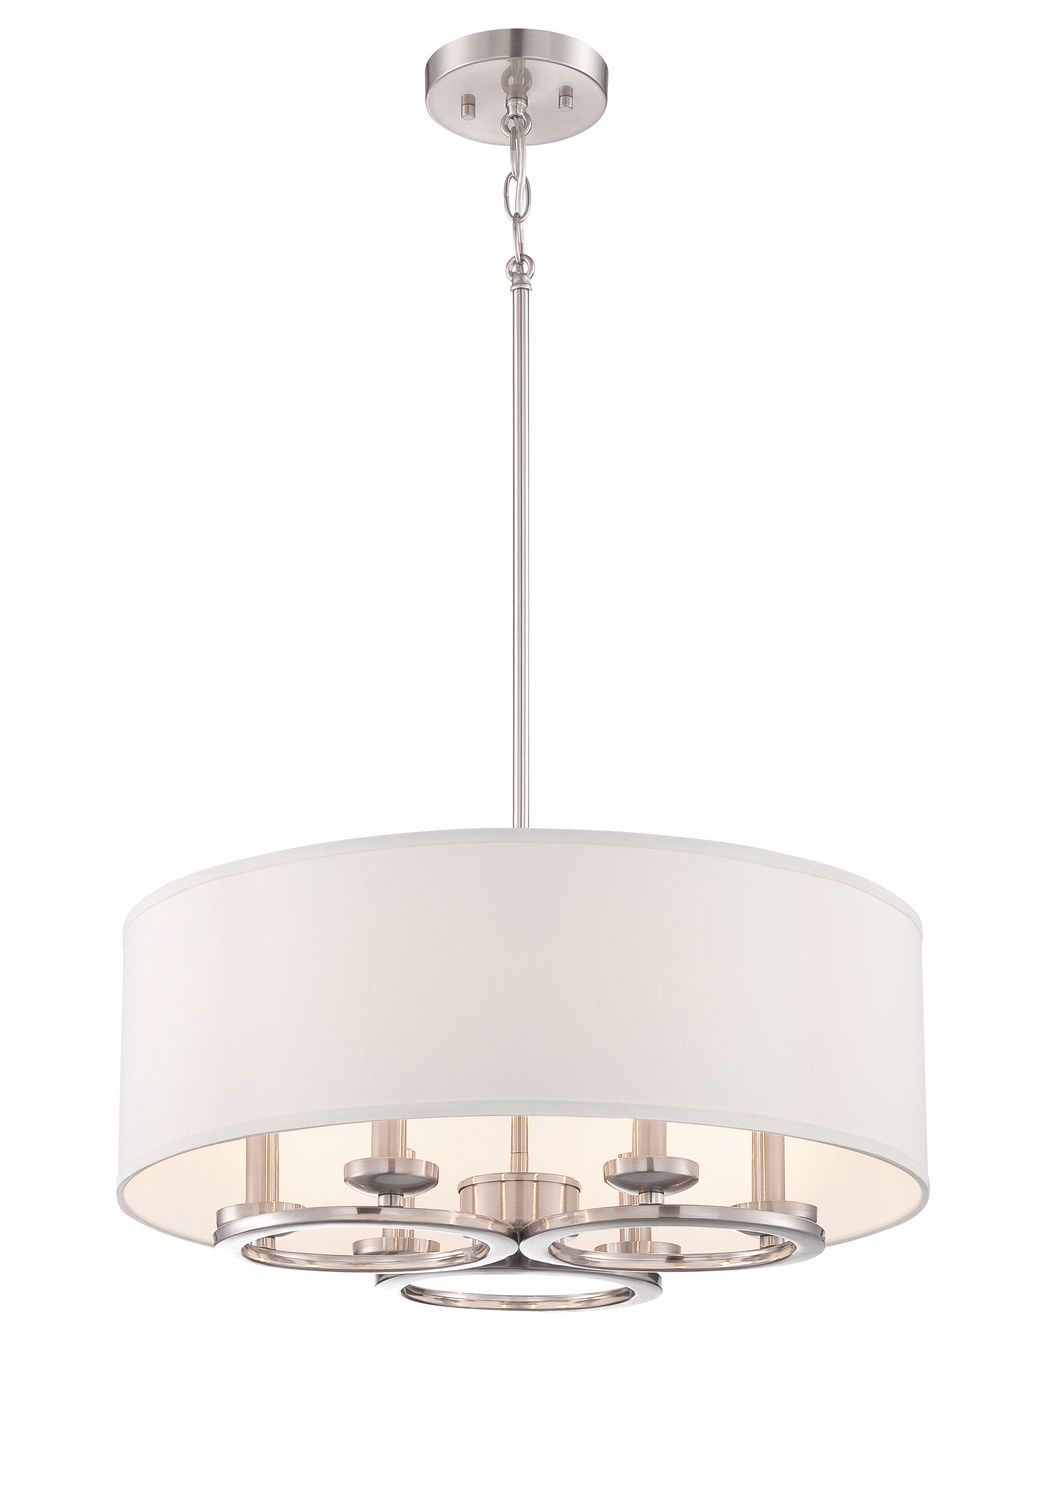 Six Light Pendant   Capital City Lighting   Designers Fountain Design